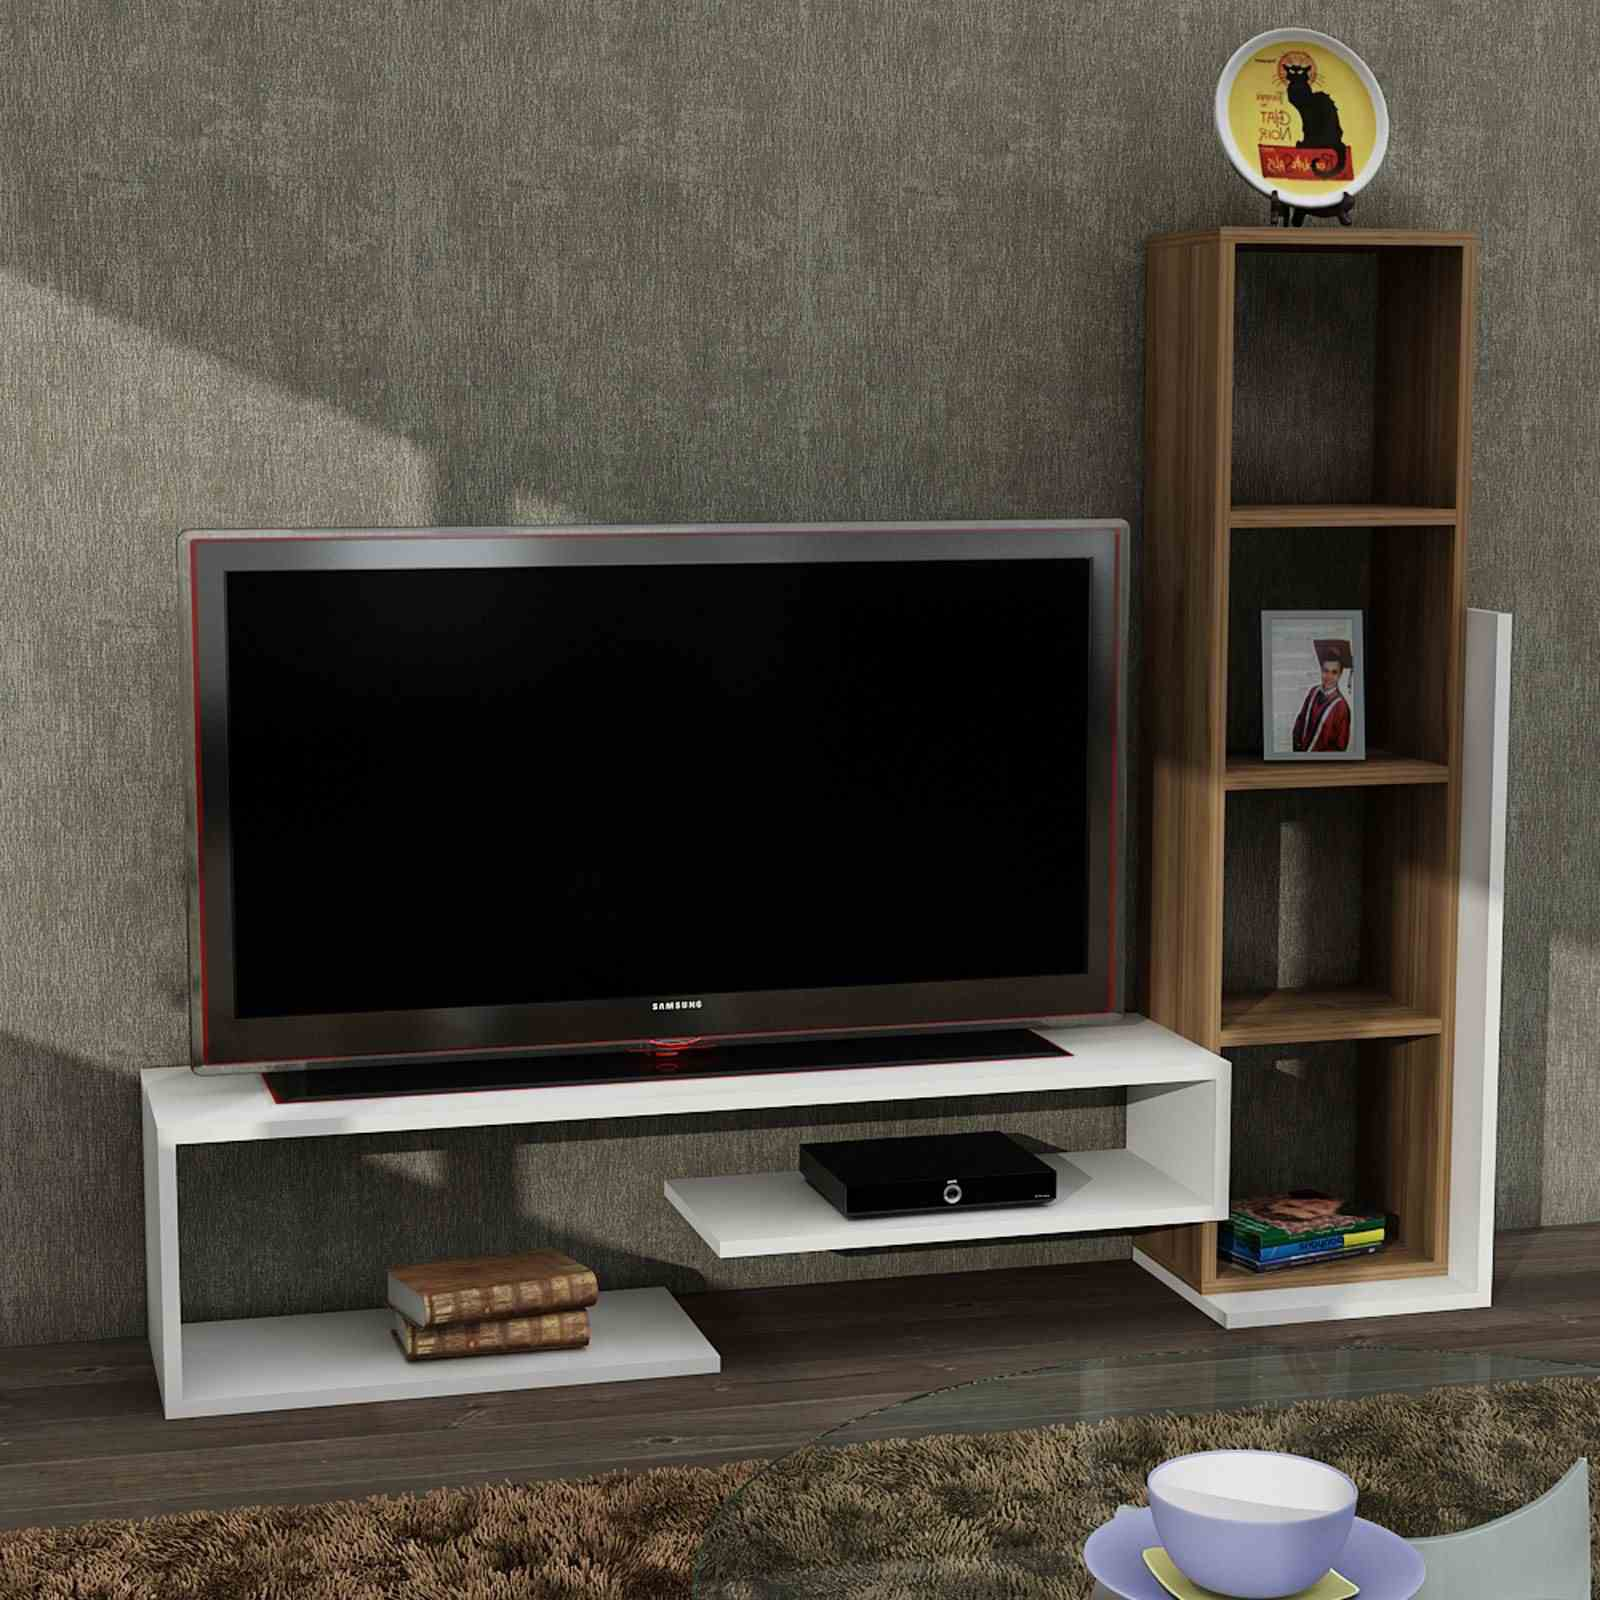 meuble tv wooden art top celio furniture casting celio furniture with meuble tv wooden art. Black Bedroom Furniture Sets. Home Design Ideas